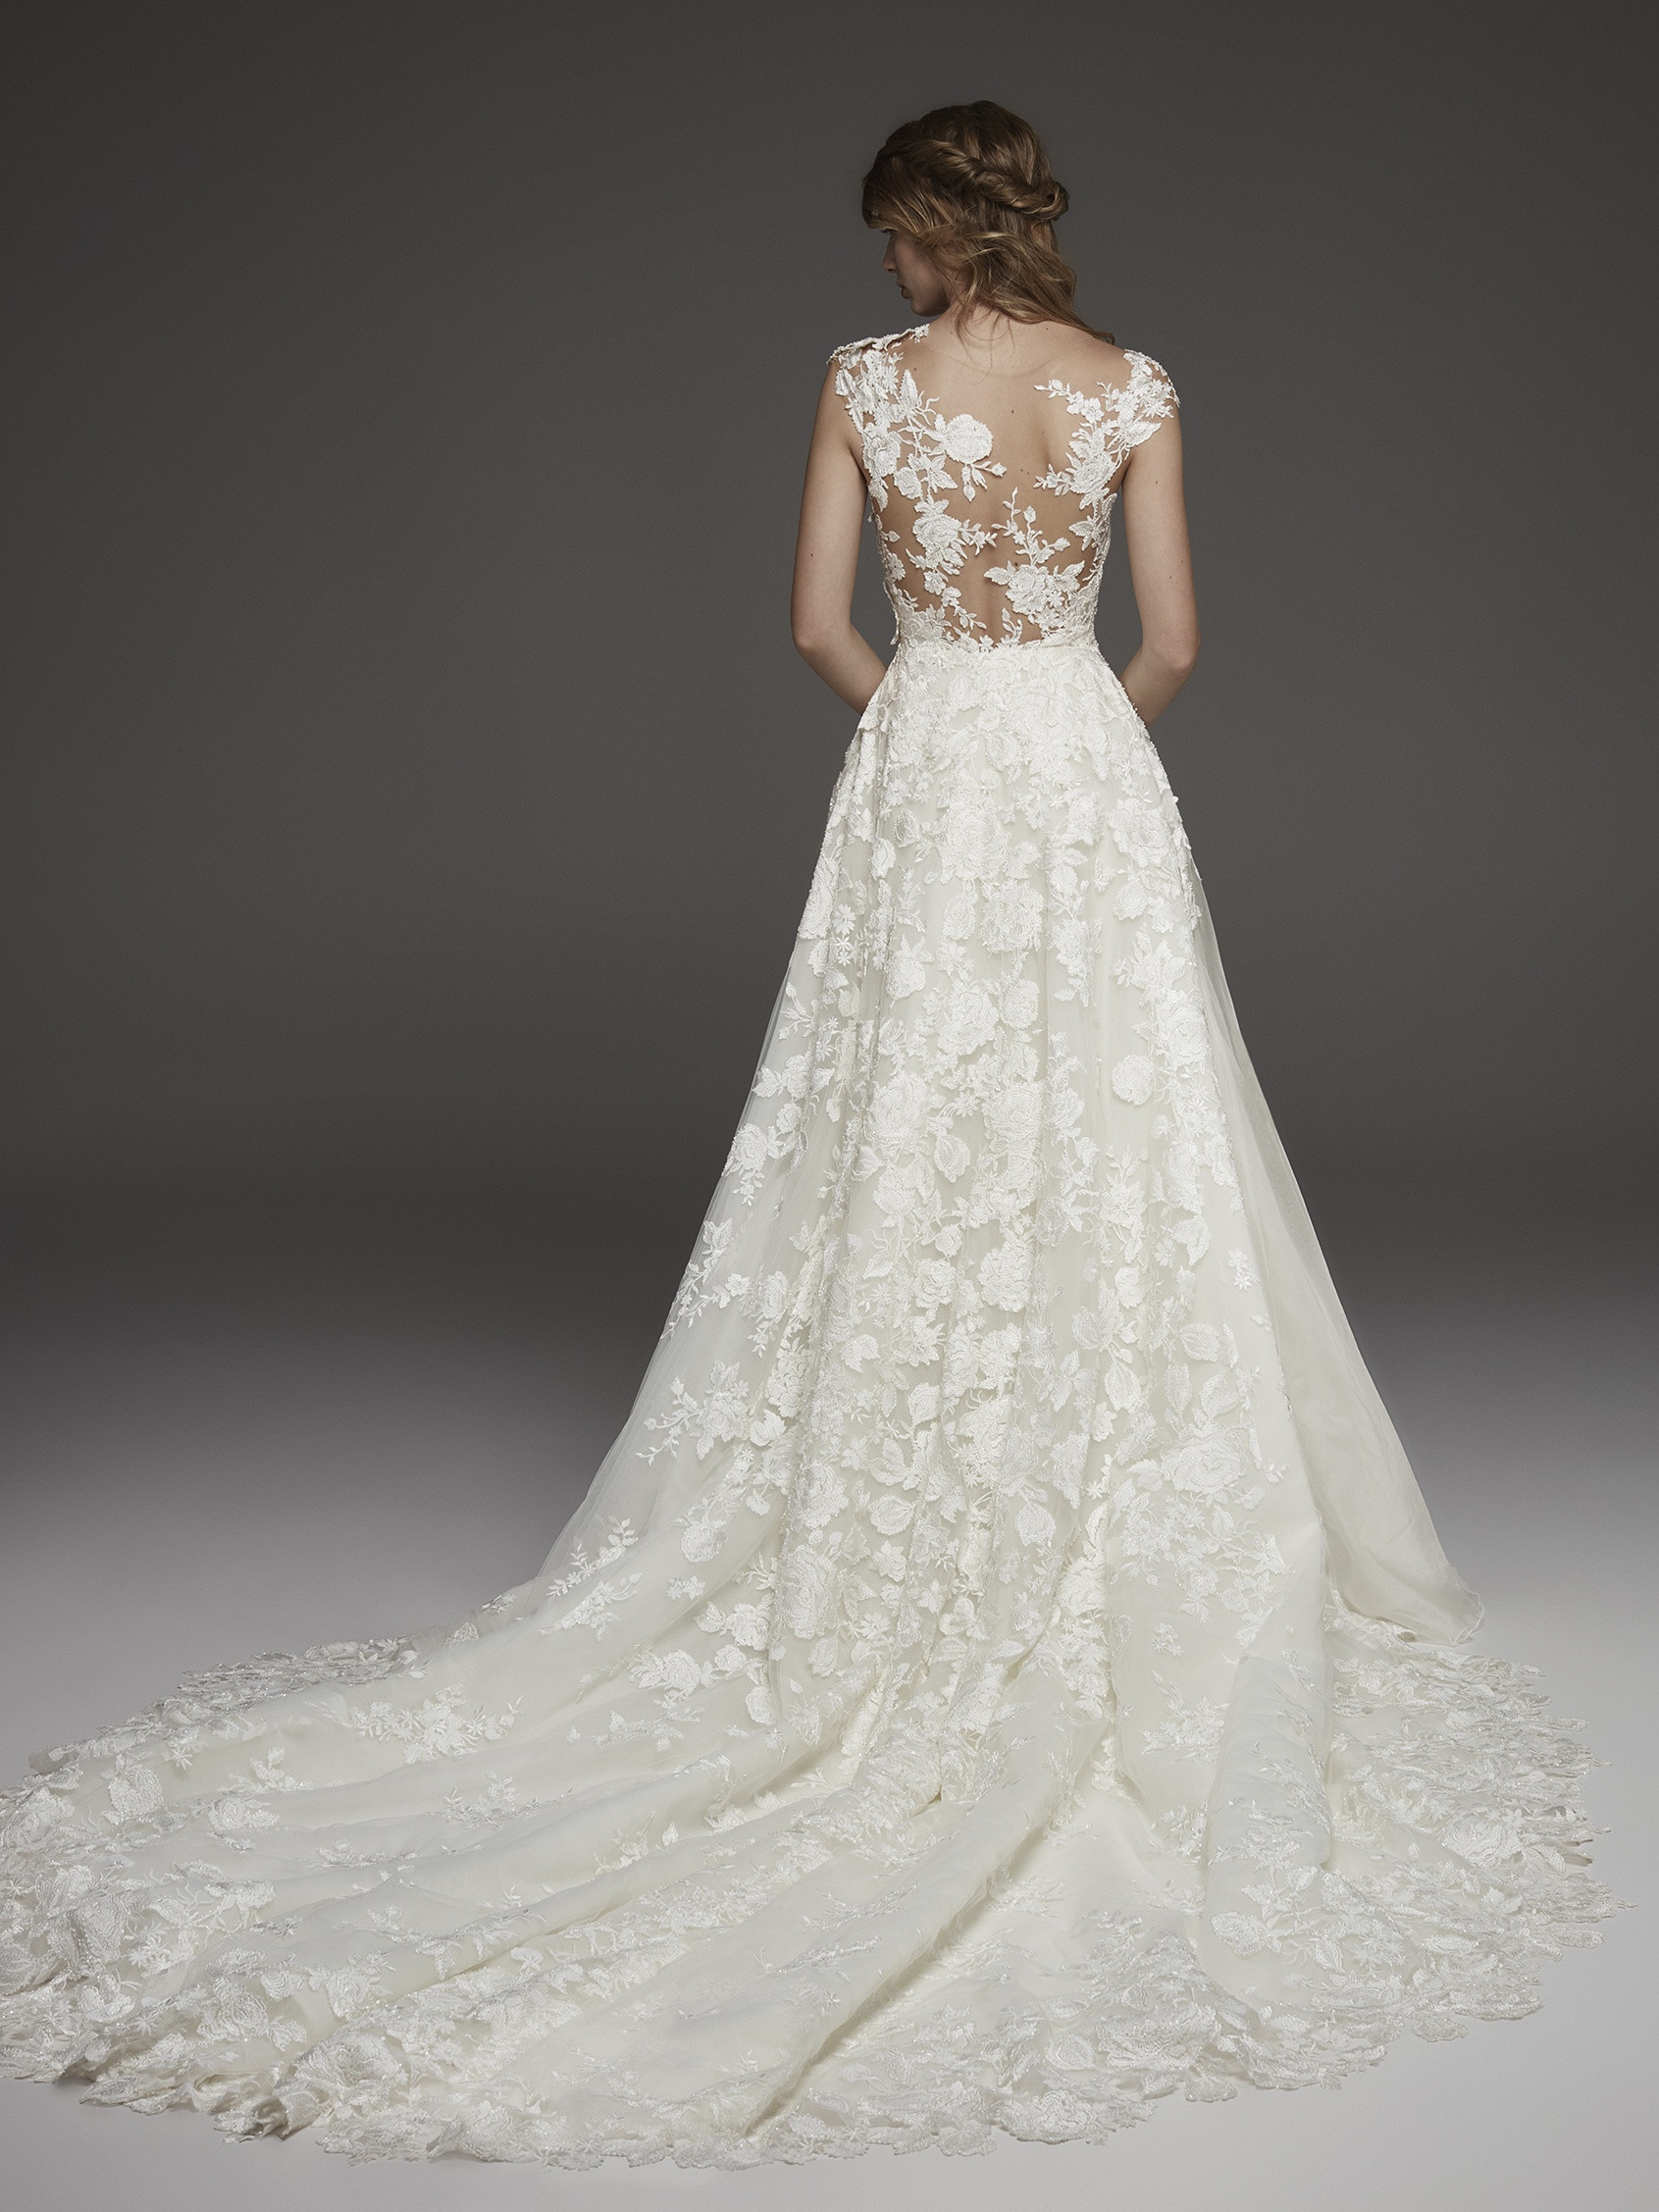 722f7c2109c56 Illusion Lace Cap Sleeve A-line Wedding Dress | Kleinfeld Bridal